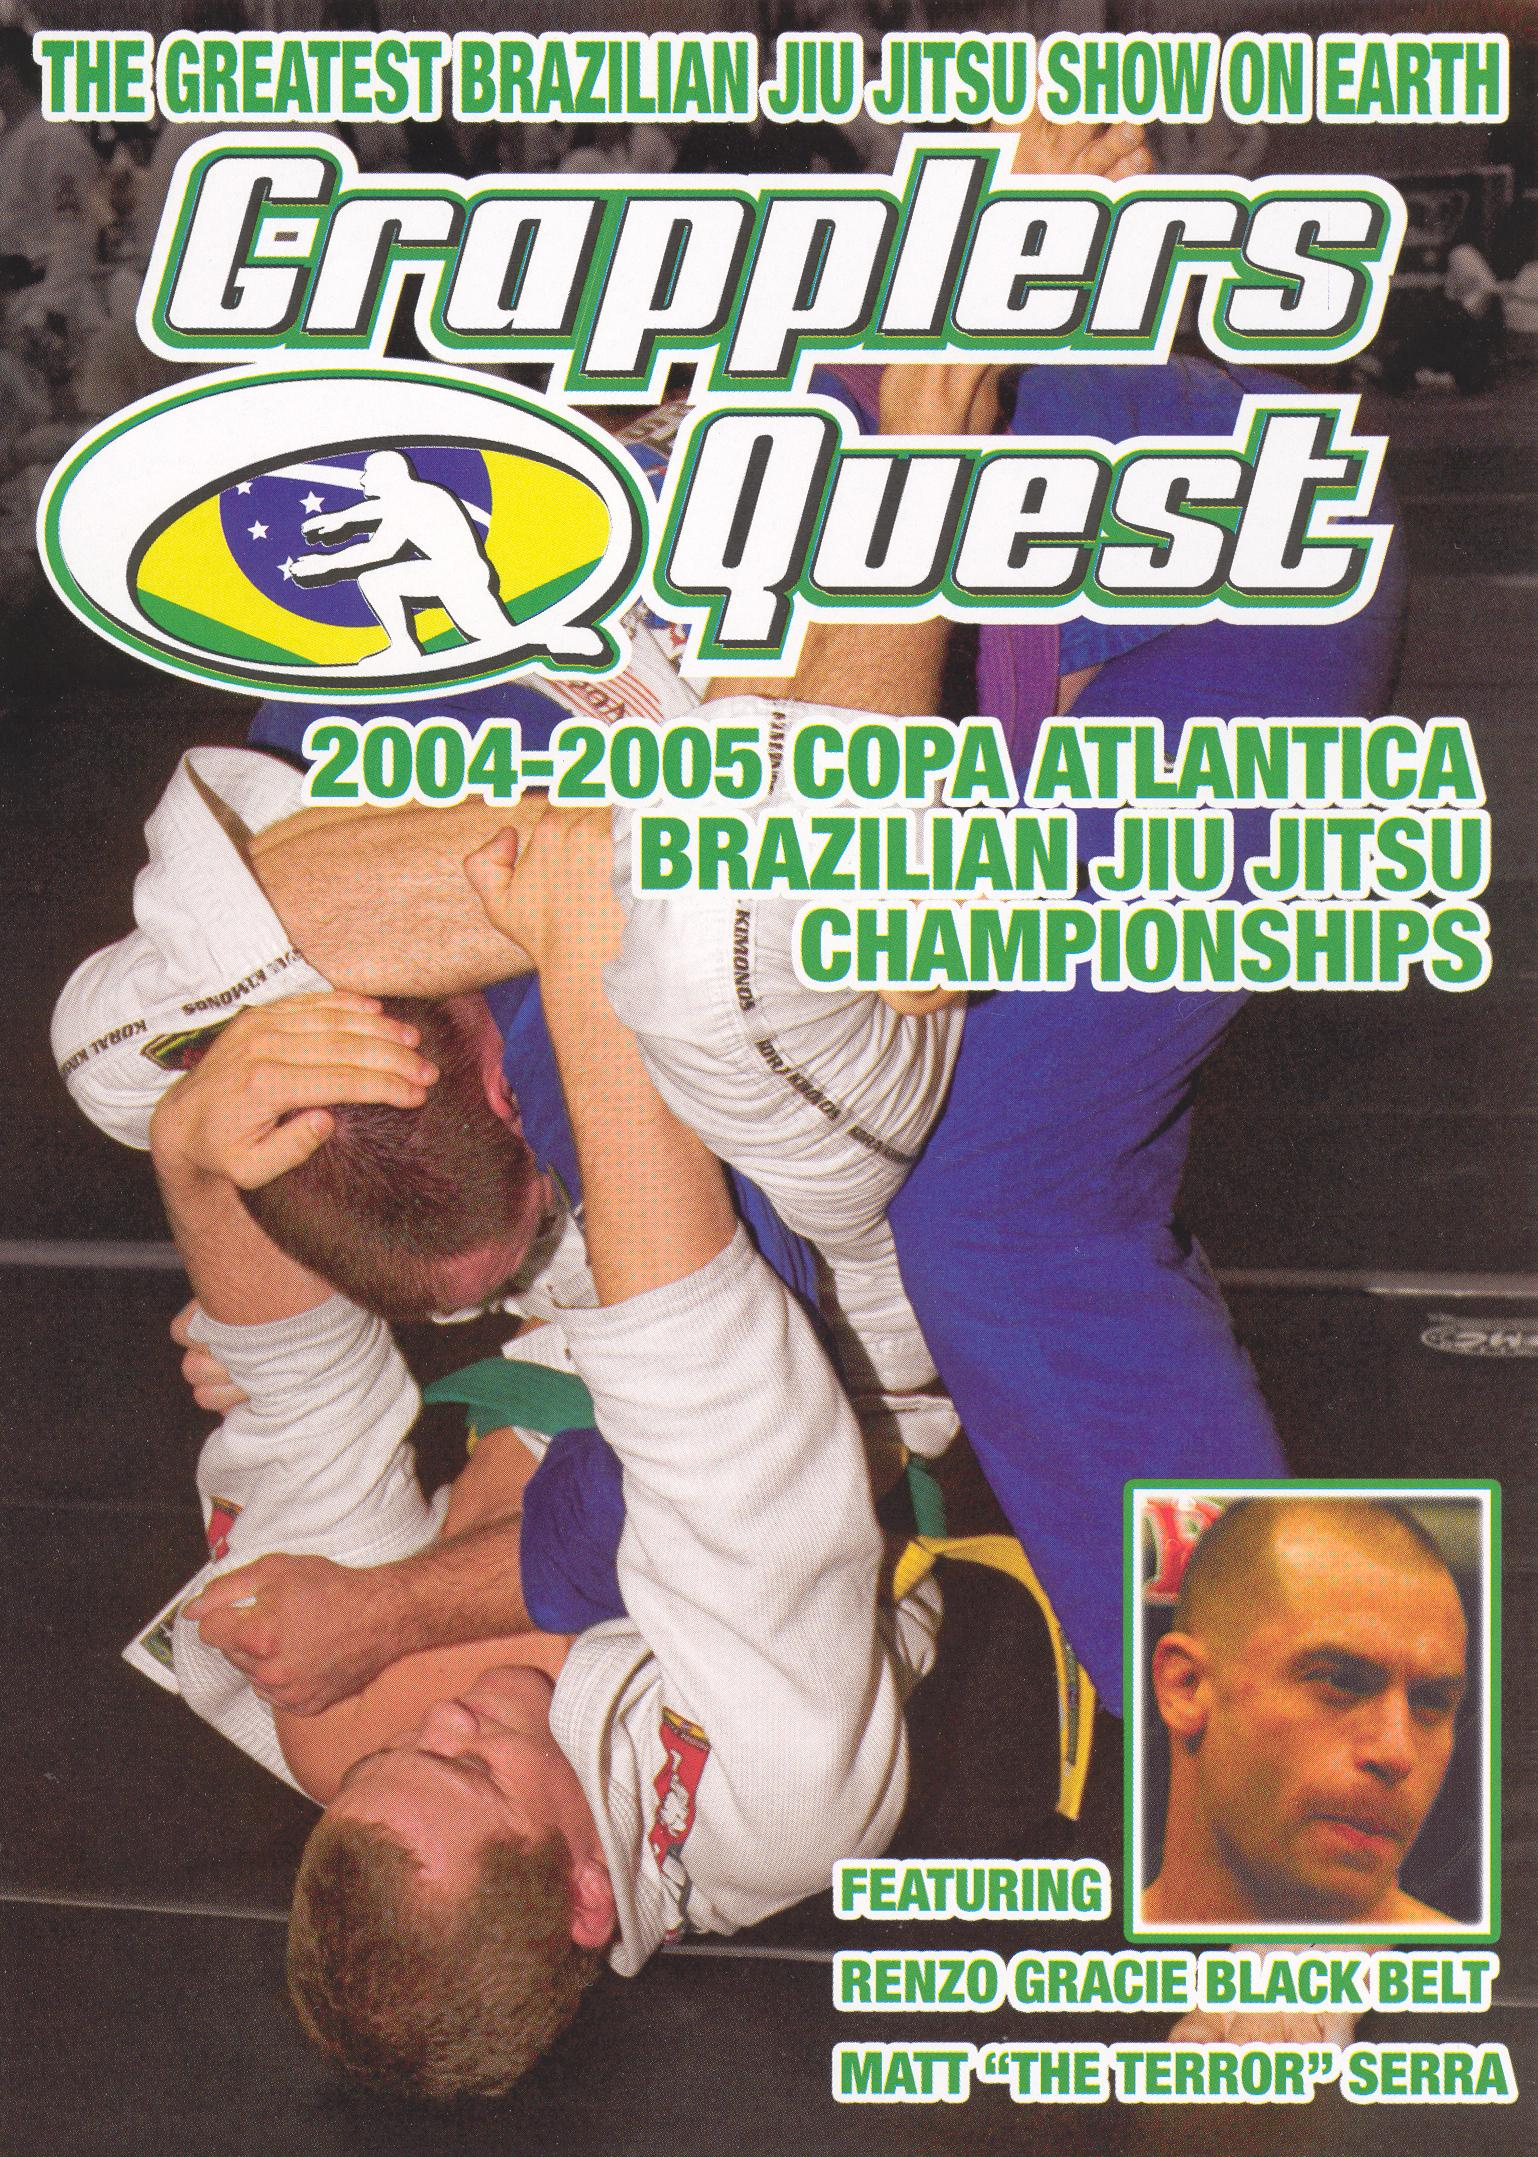 Grapplers Quest: 2004-2005 Copa Atlantica Brazilian